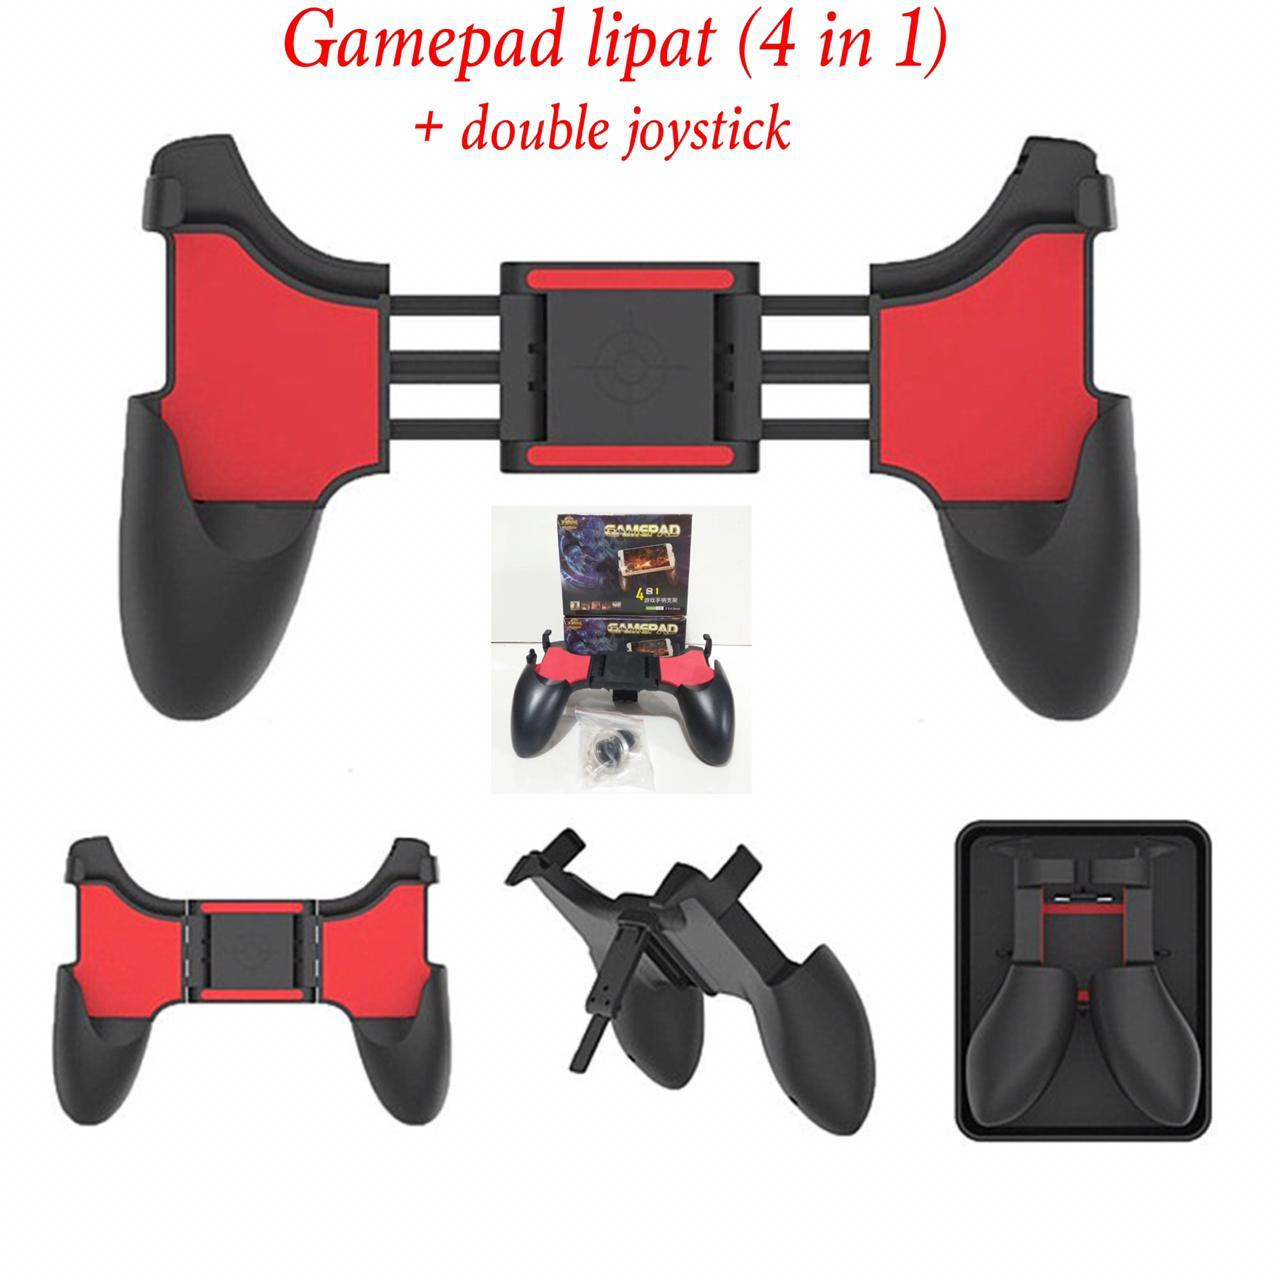 Gamepad 4 in 1 Murah